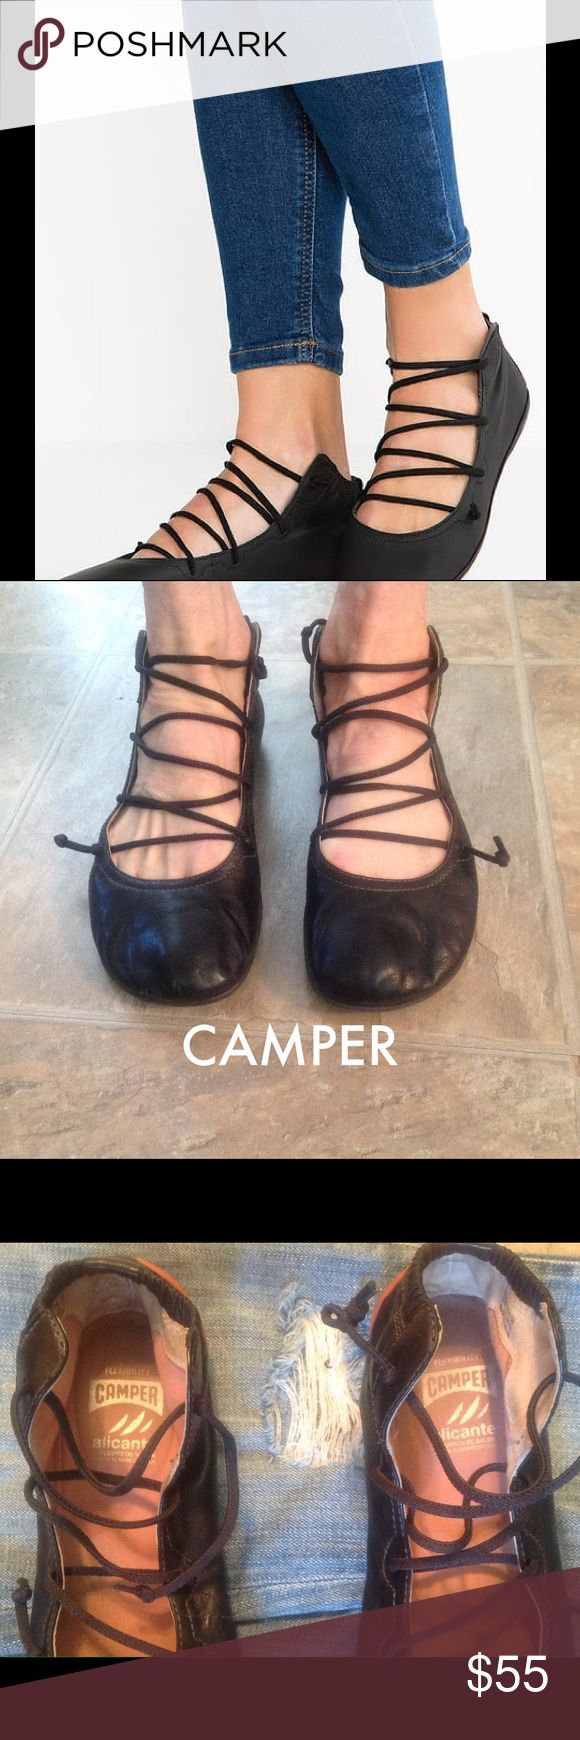 CAMPER ballet comfy black leather flats CAMPER black leather flats. Bought in the CAMPER in Barcelona las year. Most comfortable shoes ever. Size 7 M   Please ask questions.  You will not be disappointed with this purchase ❣️❣️ Camper Shoes Flats & Loafers